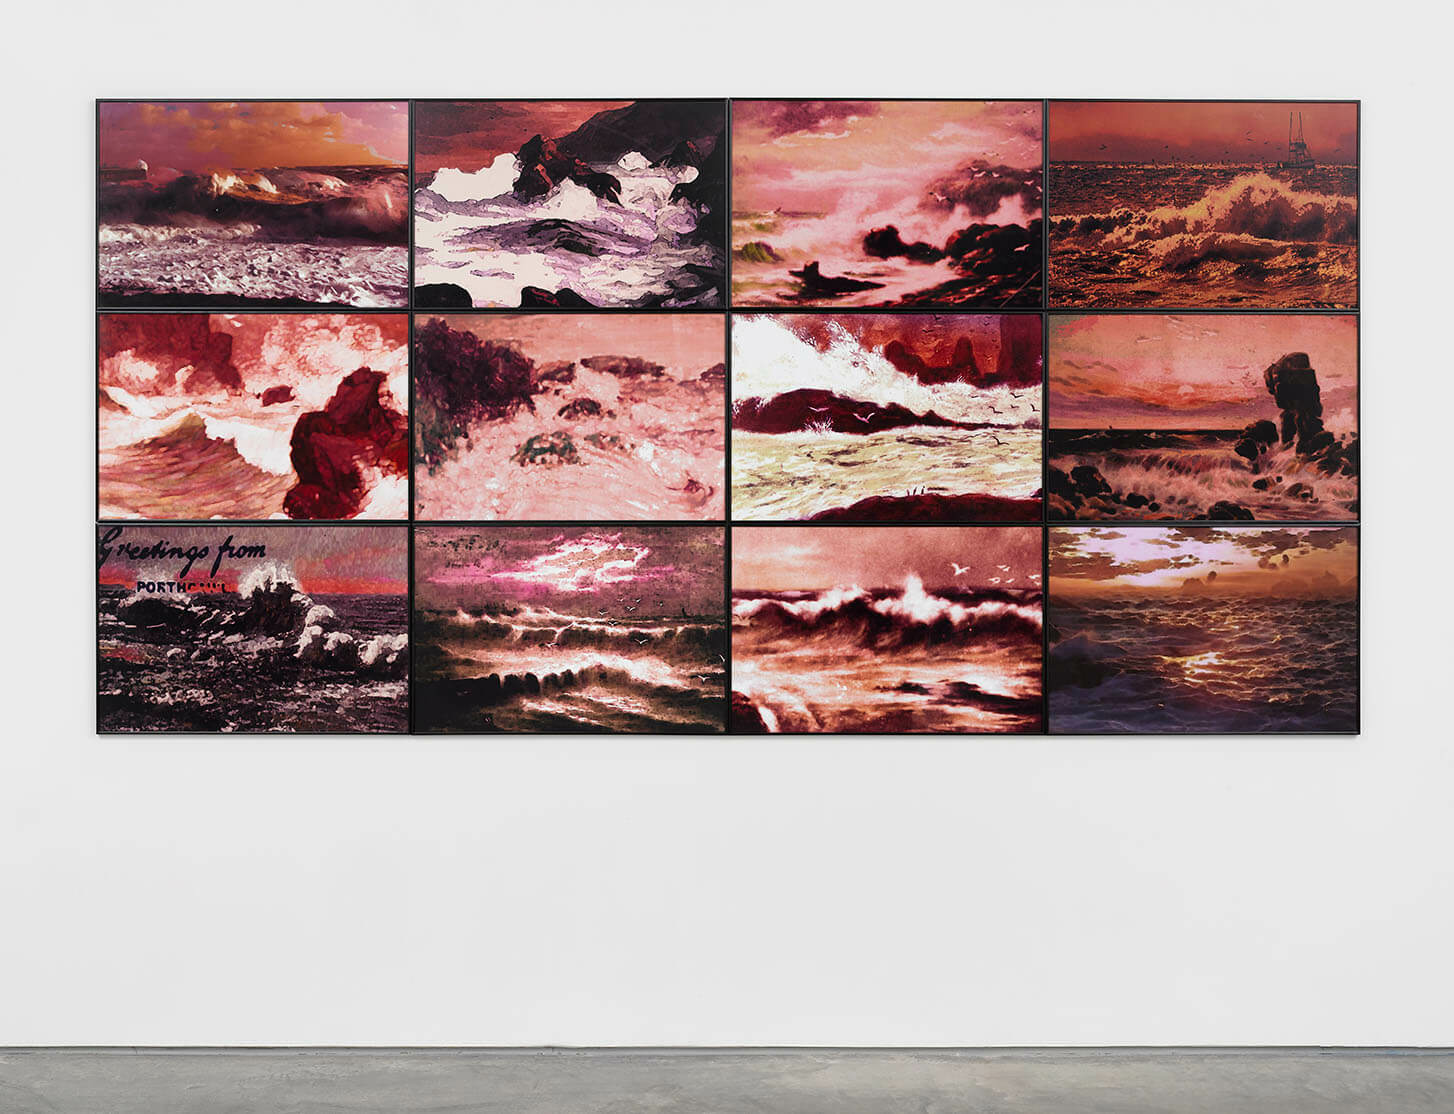 The Polygon in Vancouver presents exhibition of work by Susan Hiller